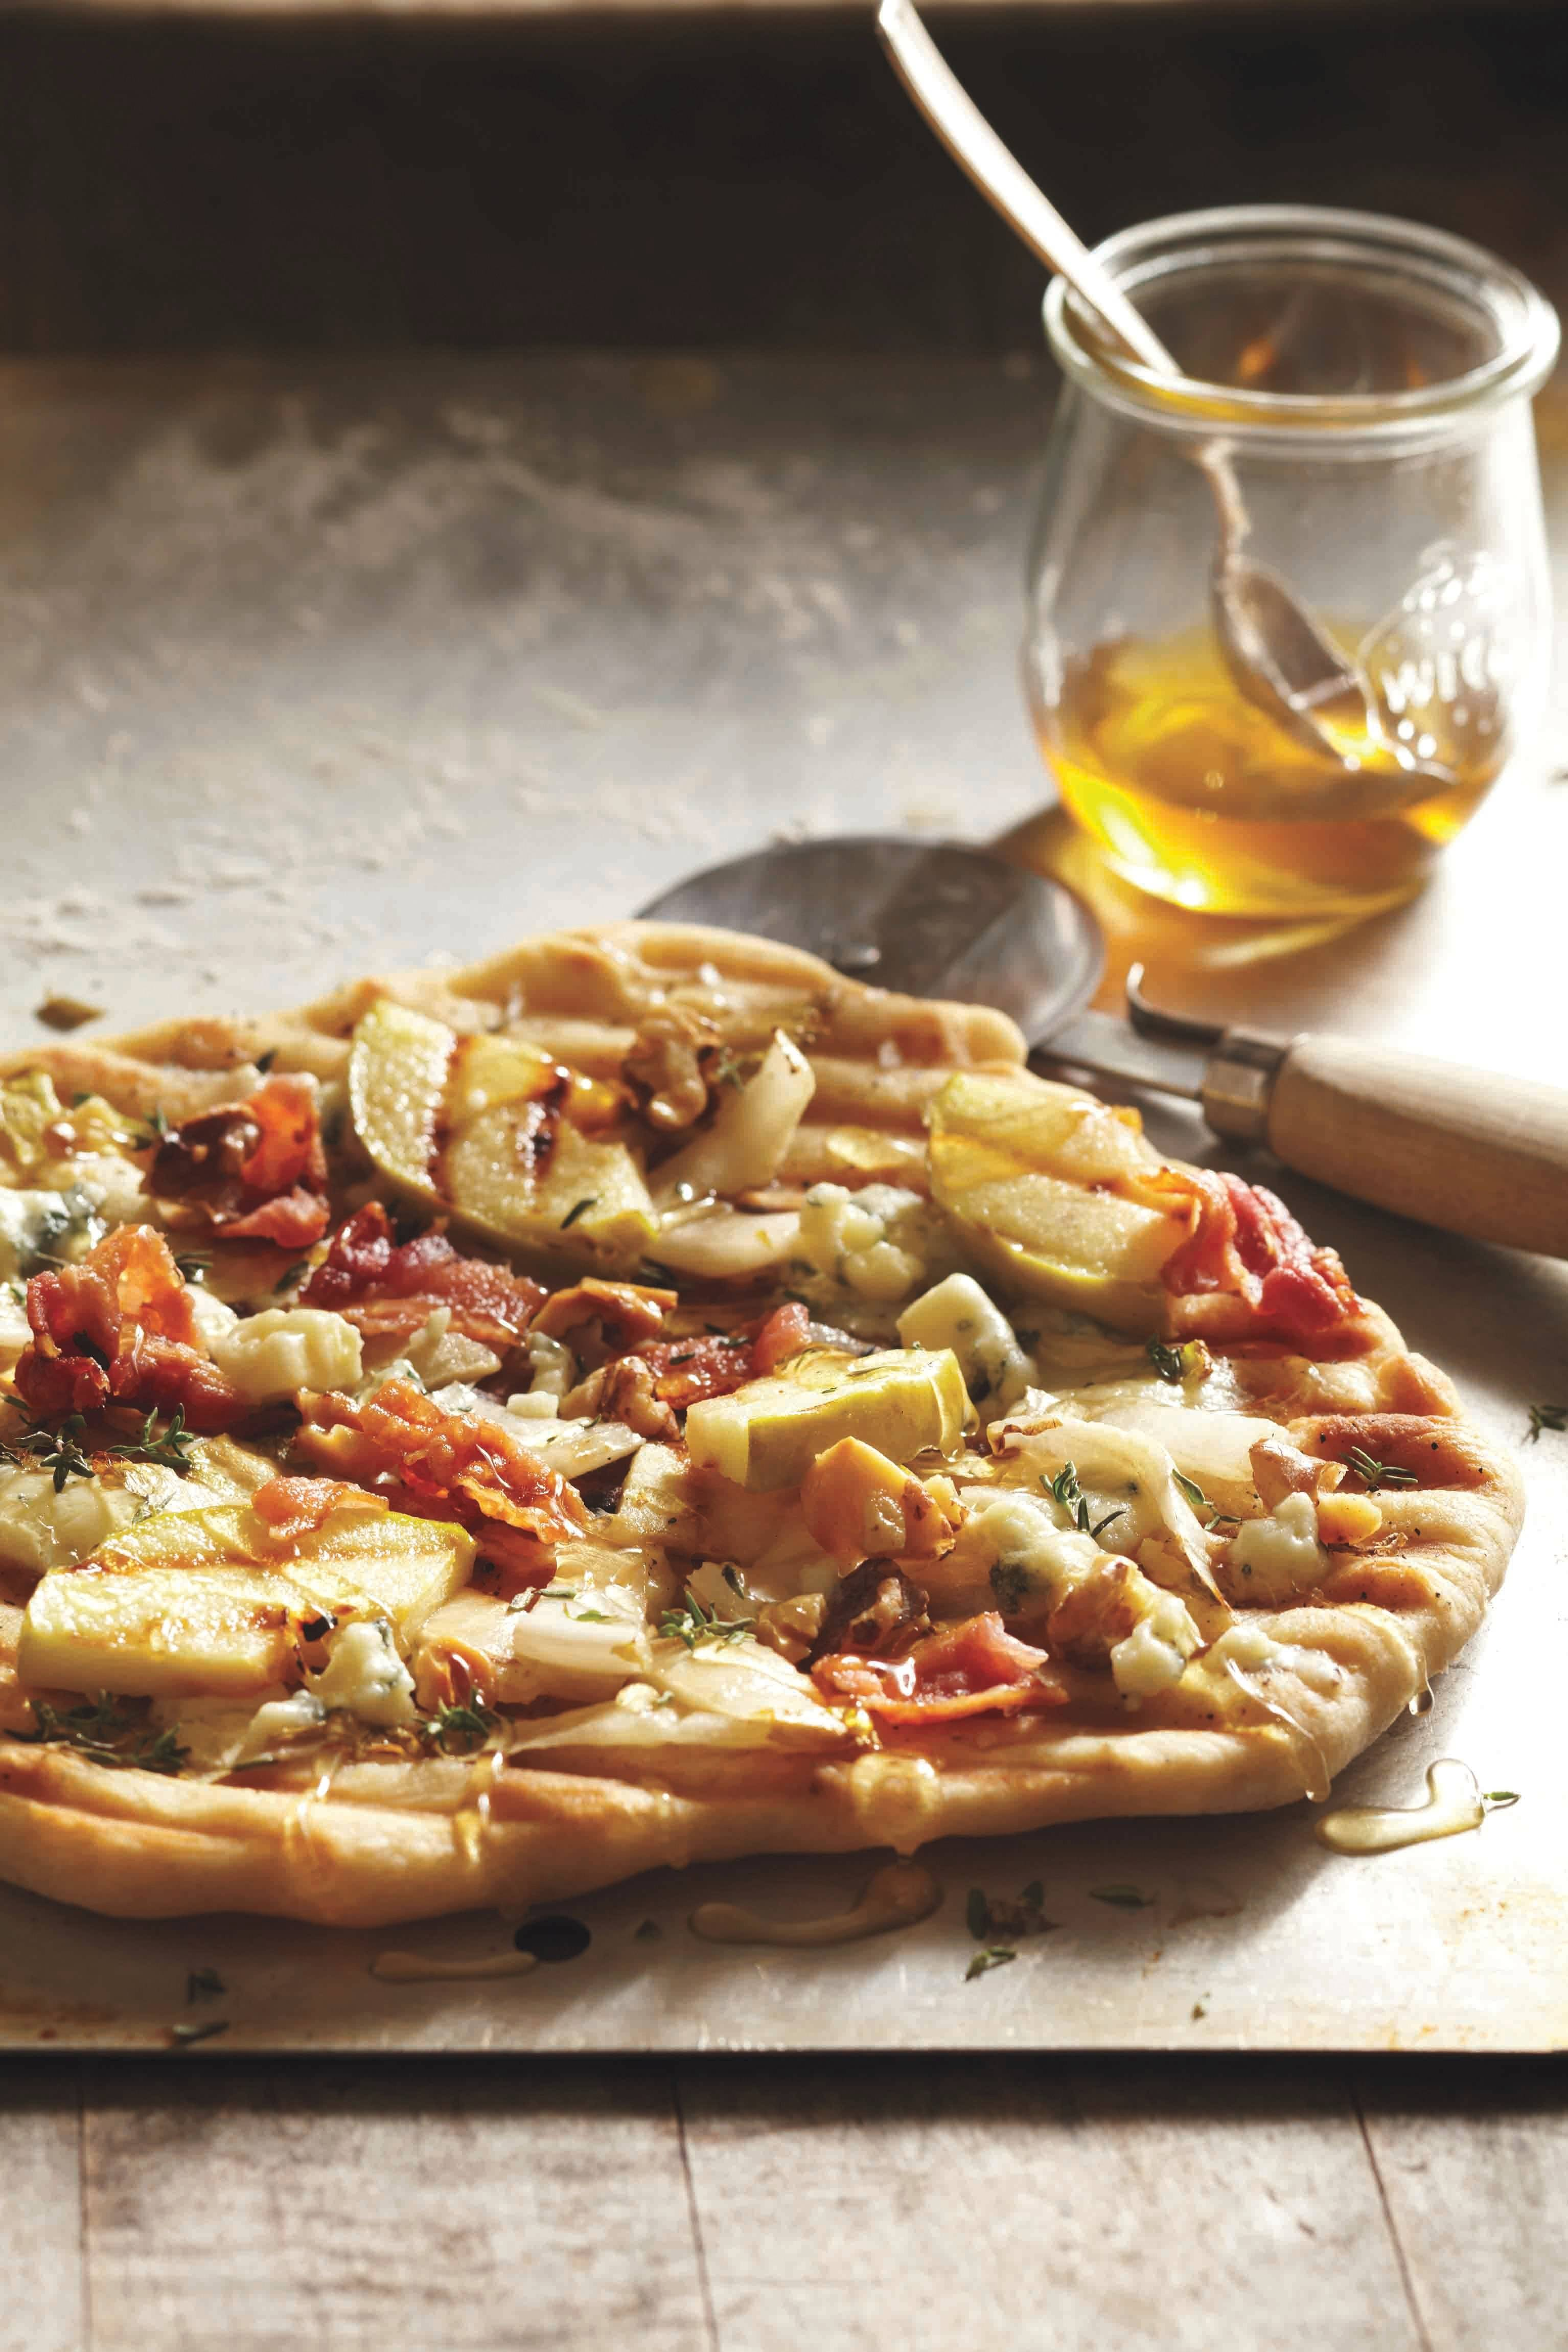 Endive and apples hit the flames before topping a blue cheese and bacon-studded grilled pizza.